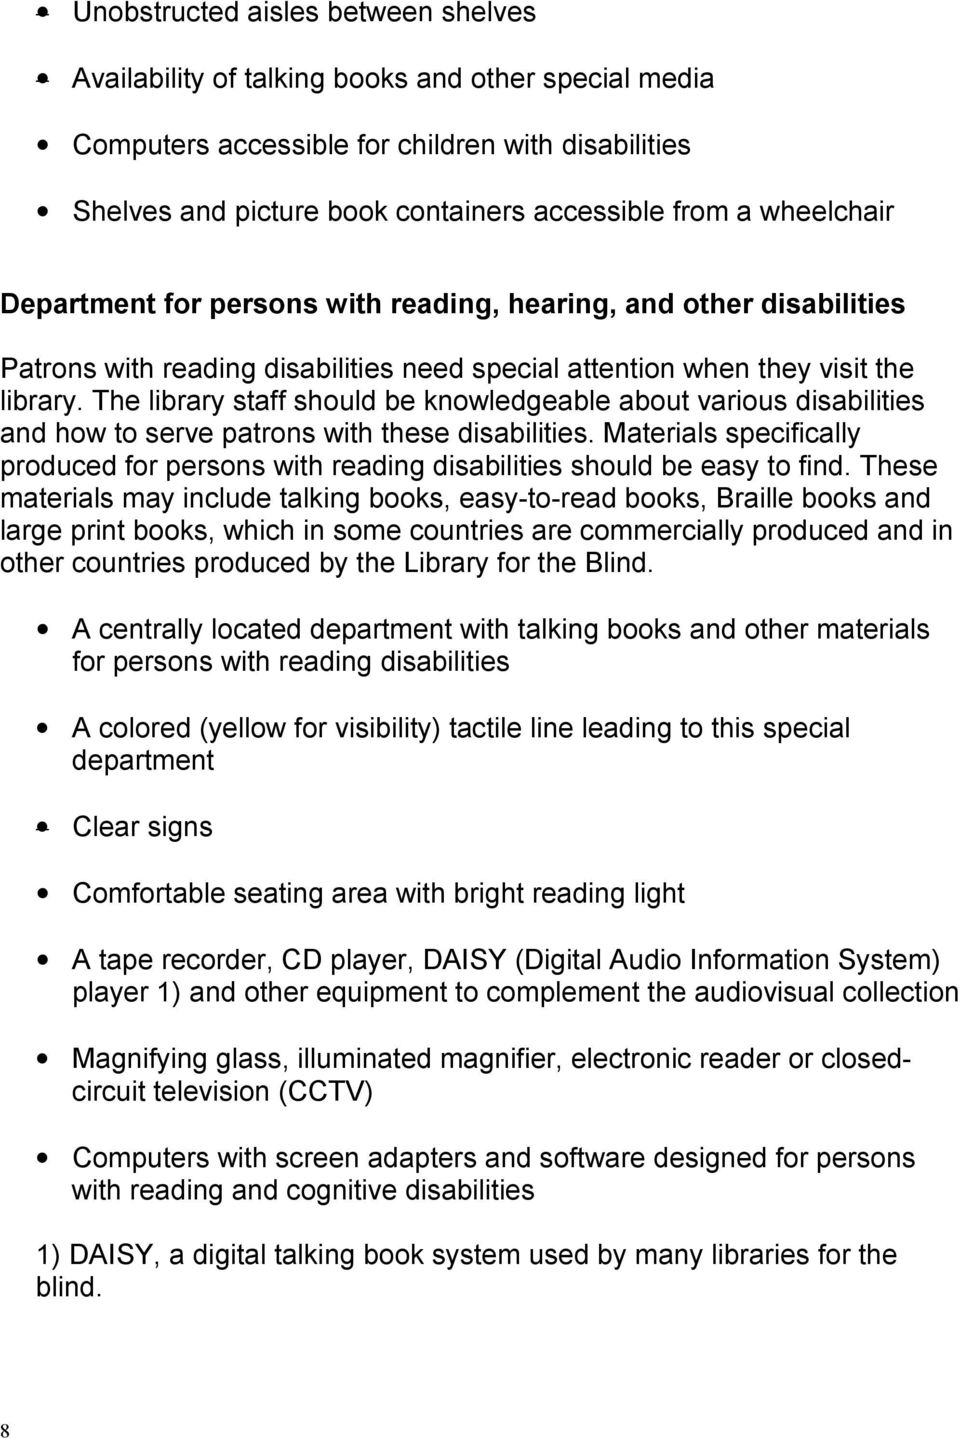 The library staff should be knowledgeable about various disabilities and how to serve patrons with these disabilities.